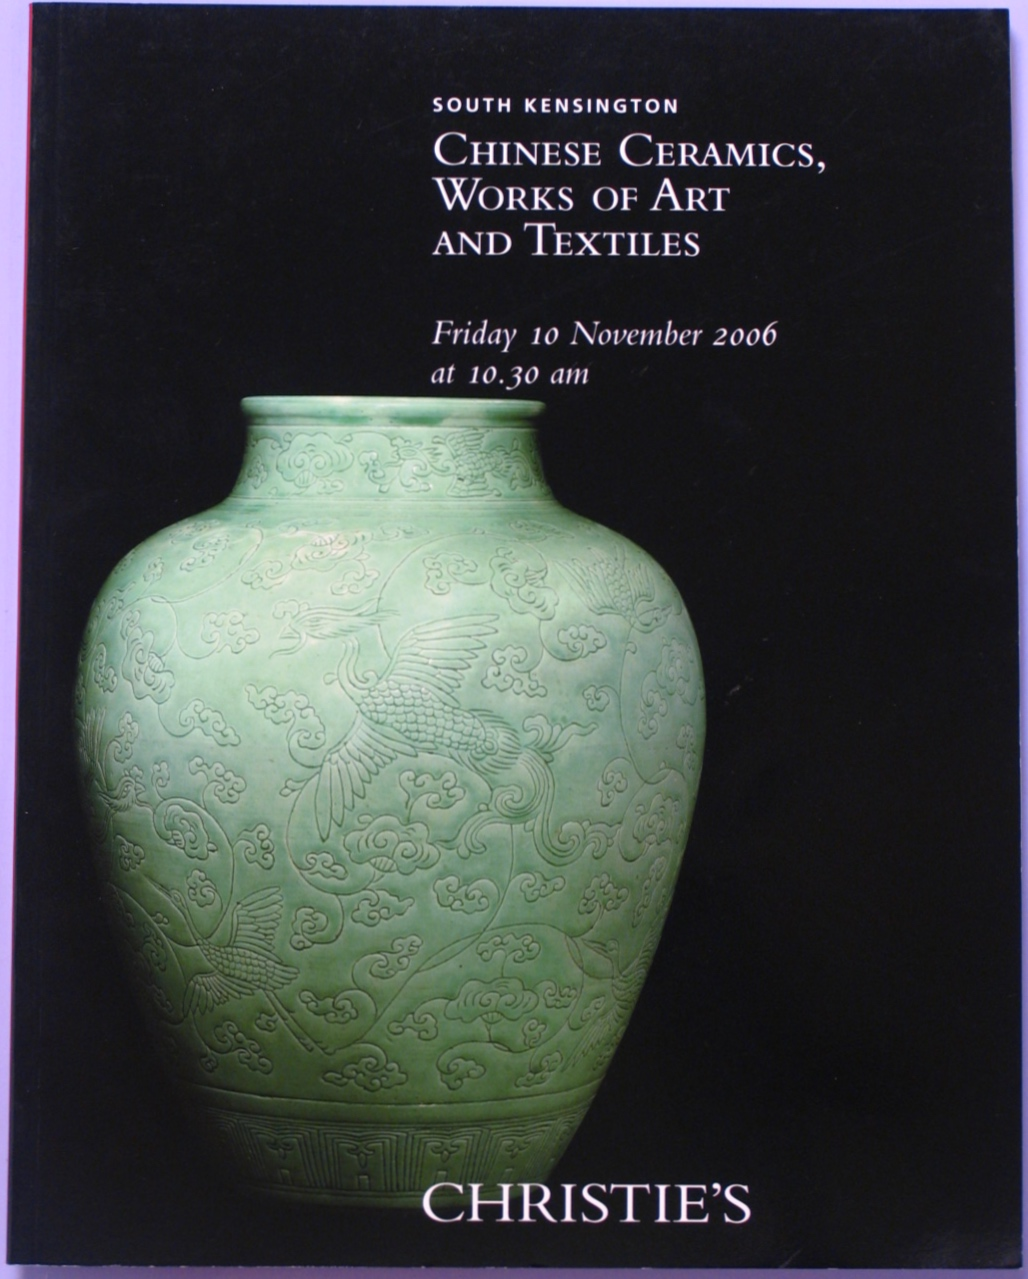 CSK20061110: Bookshop: [2006] Christie's South Kensington Chinese Ceramics. Works of Art and Textiles